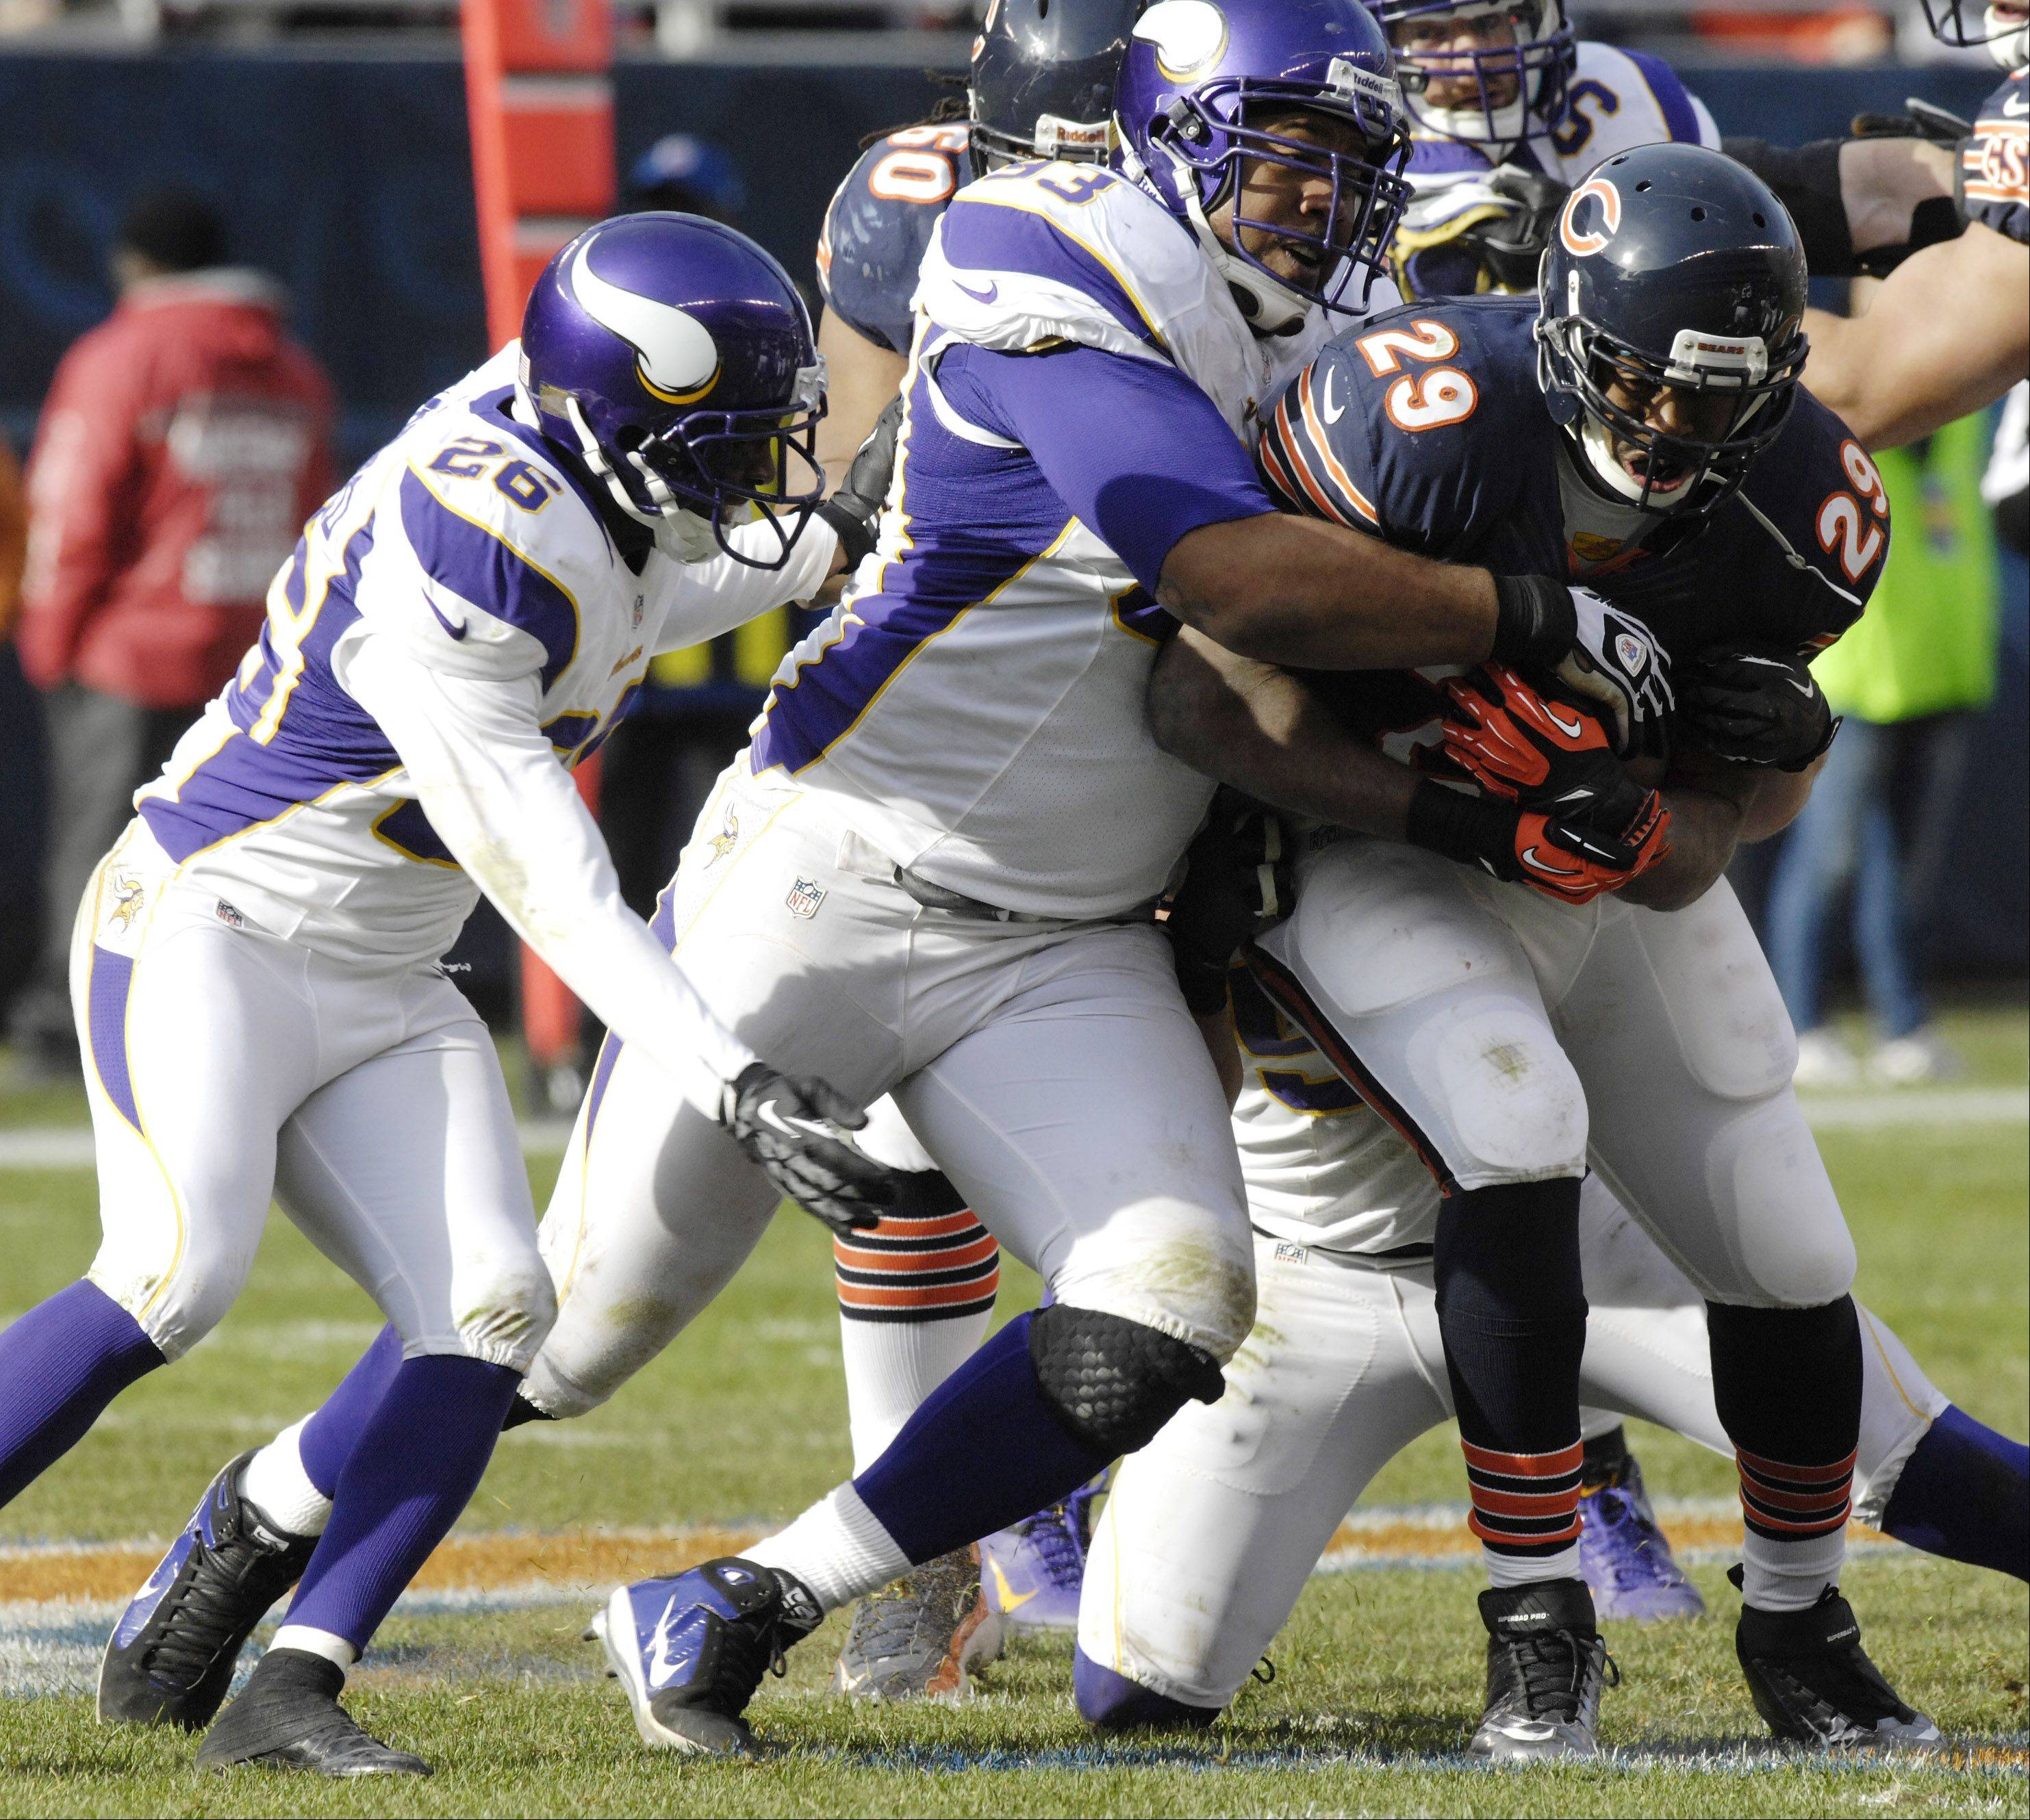 Chicago Bears running back Michael Bush gets tackled by Minnesota Vikings defensive tackle Kevin Williams, middle, and cornerback Antoine Winfield at Soldier Field Sunday.